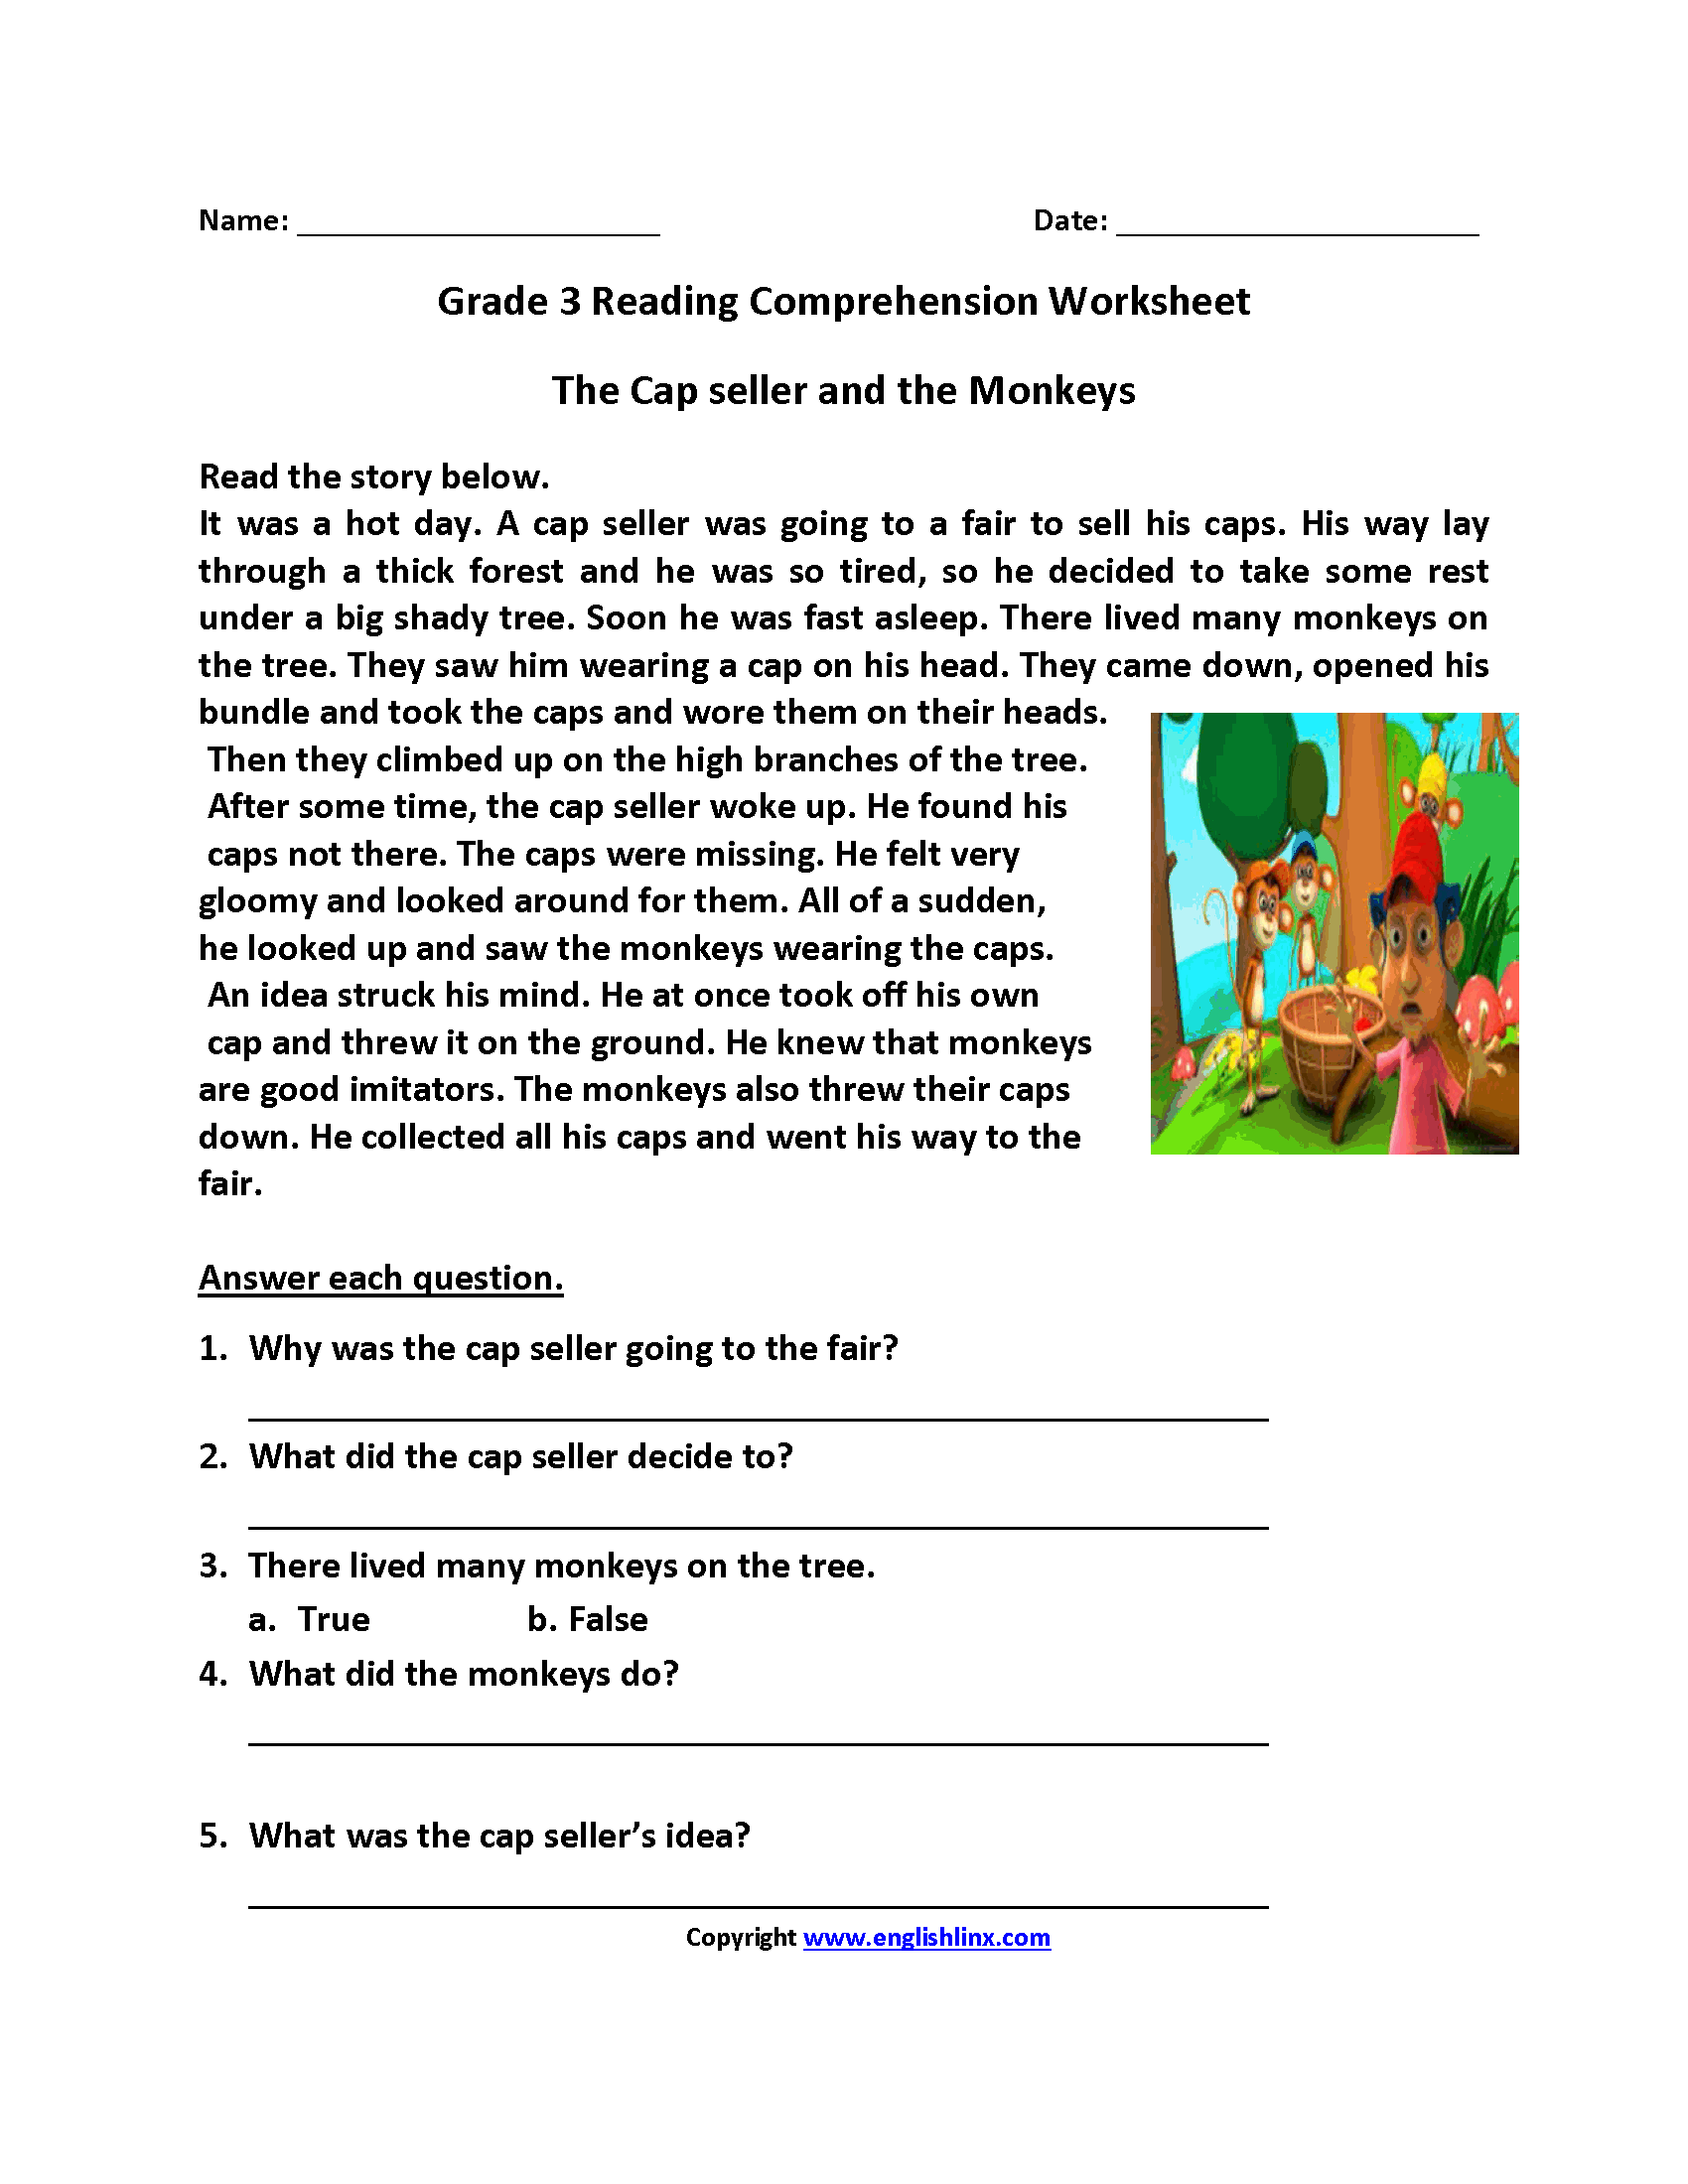 Worksheets 3rd Grade Comprehension Worksheets cap seller and monkeys third grade reading worksheets desktop worksheets